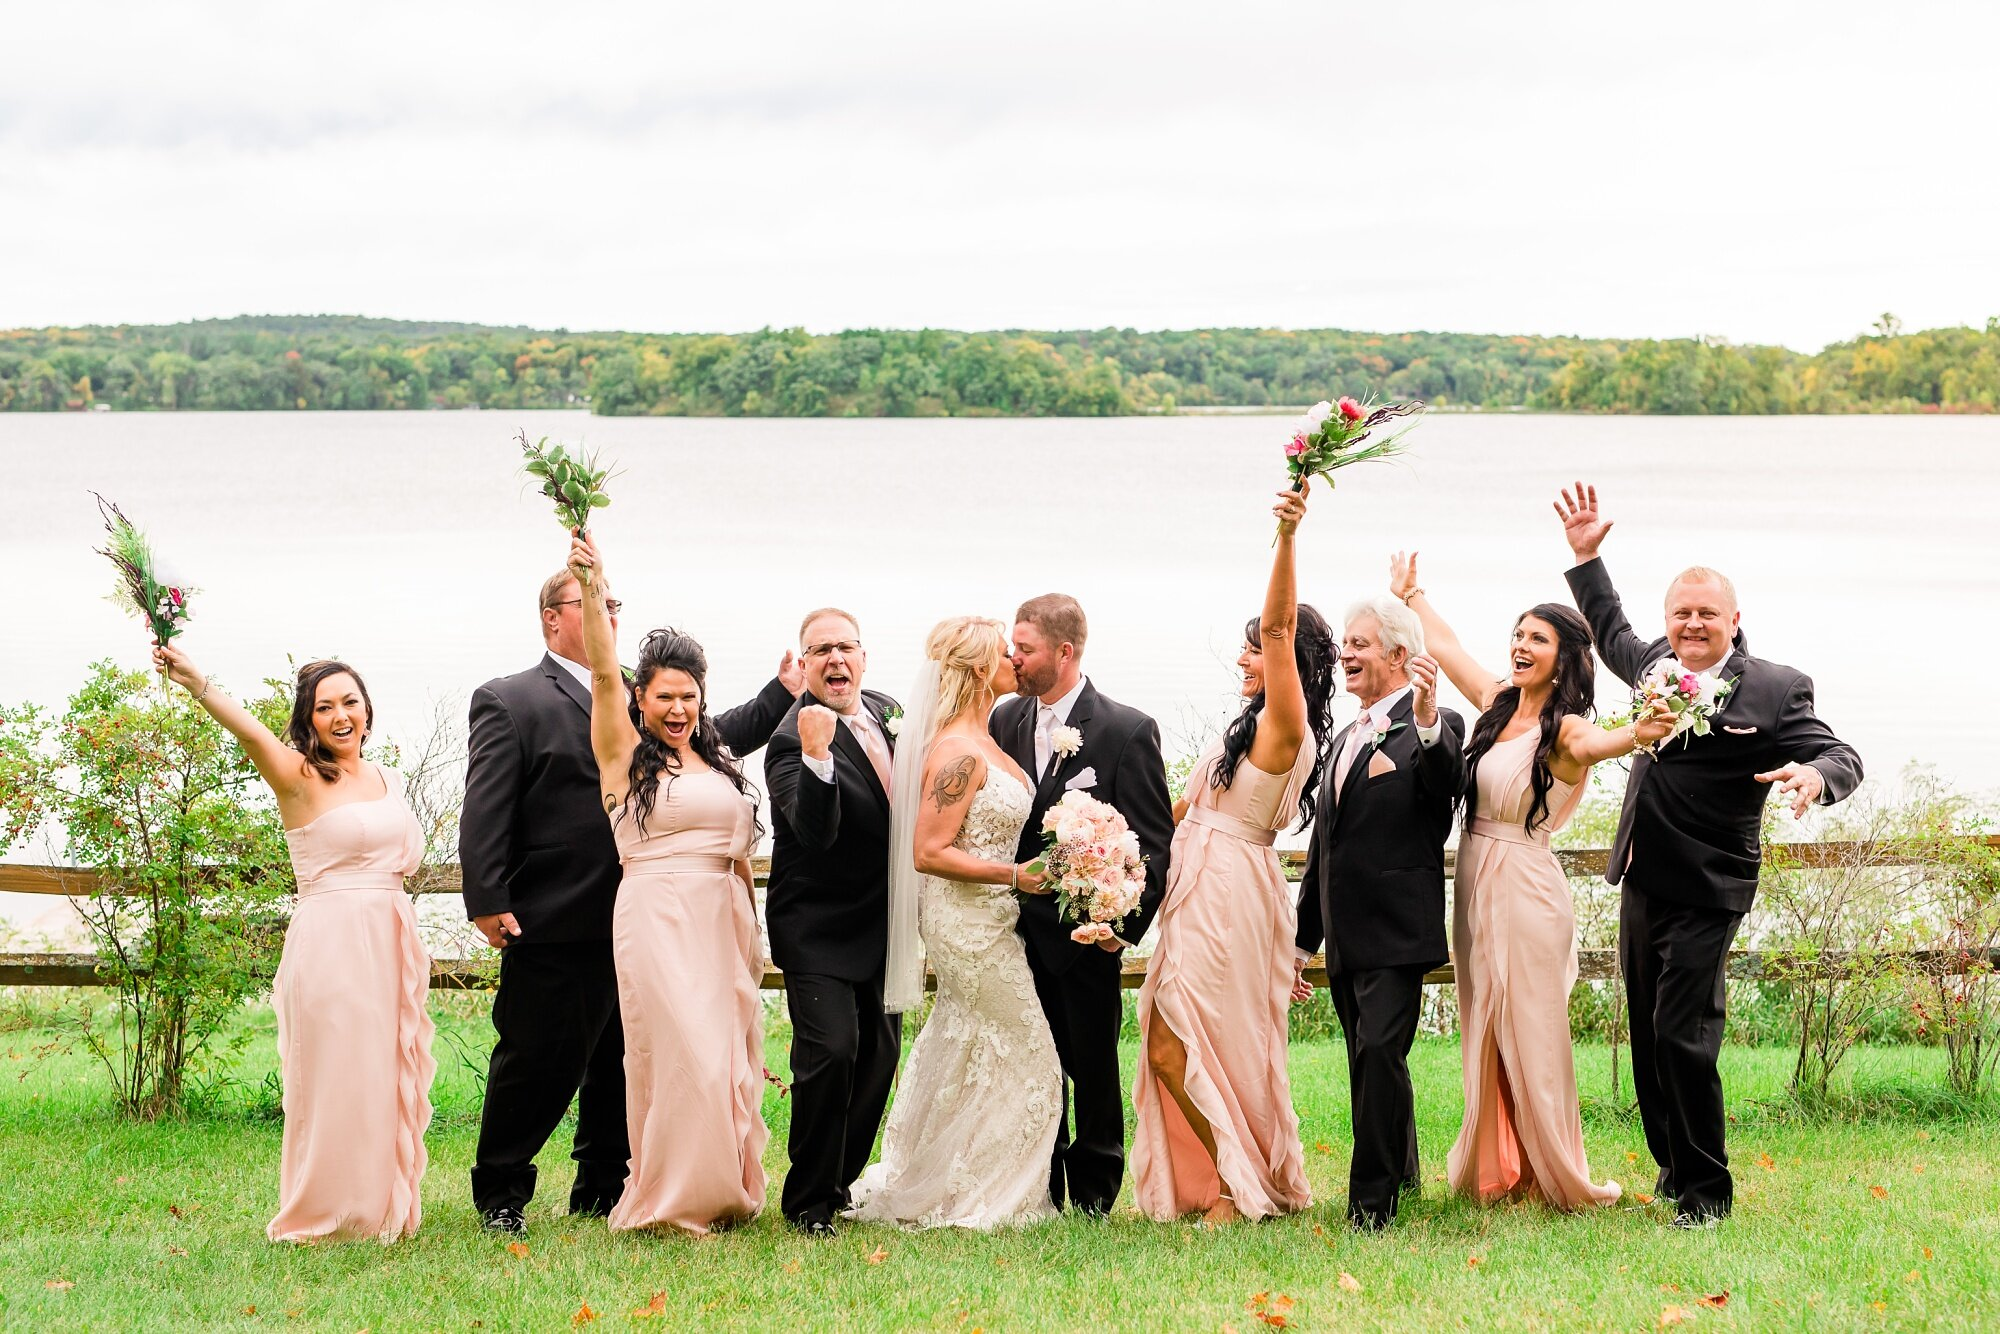 Amber Langerud Photography_Eagle Lake Rustic Styled Outdoor Wedding in Minnesota_6850.jpg